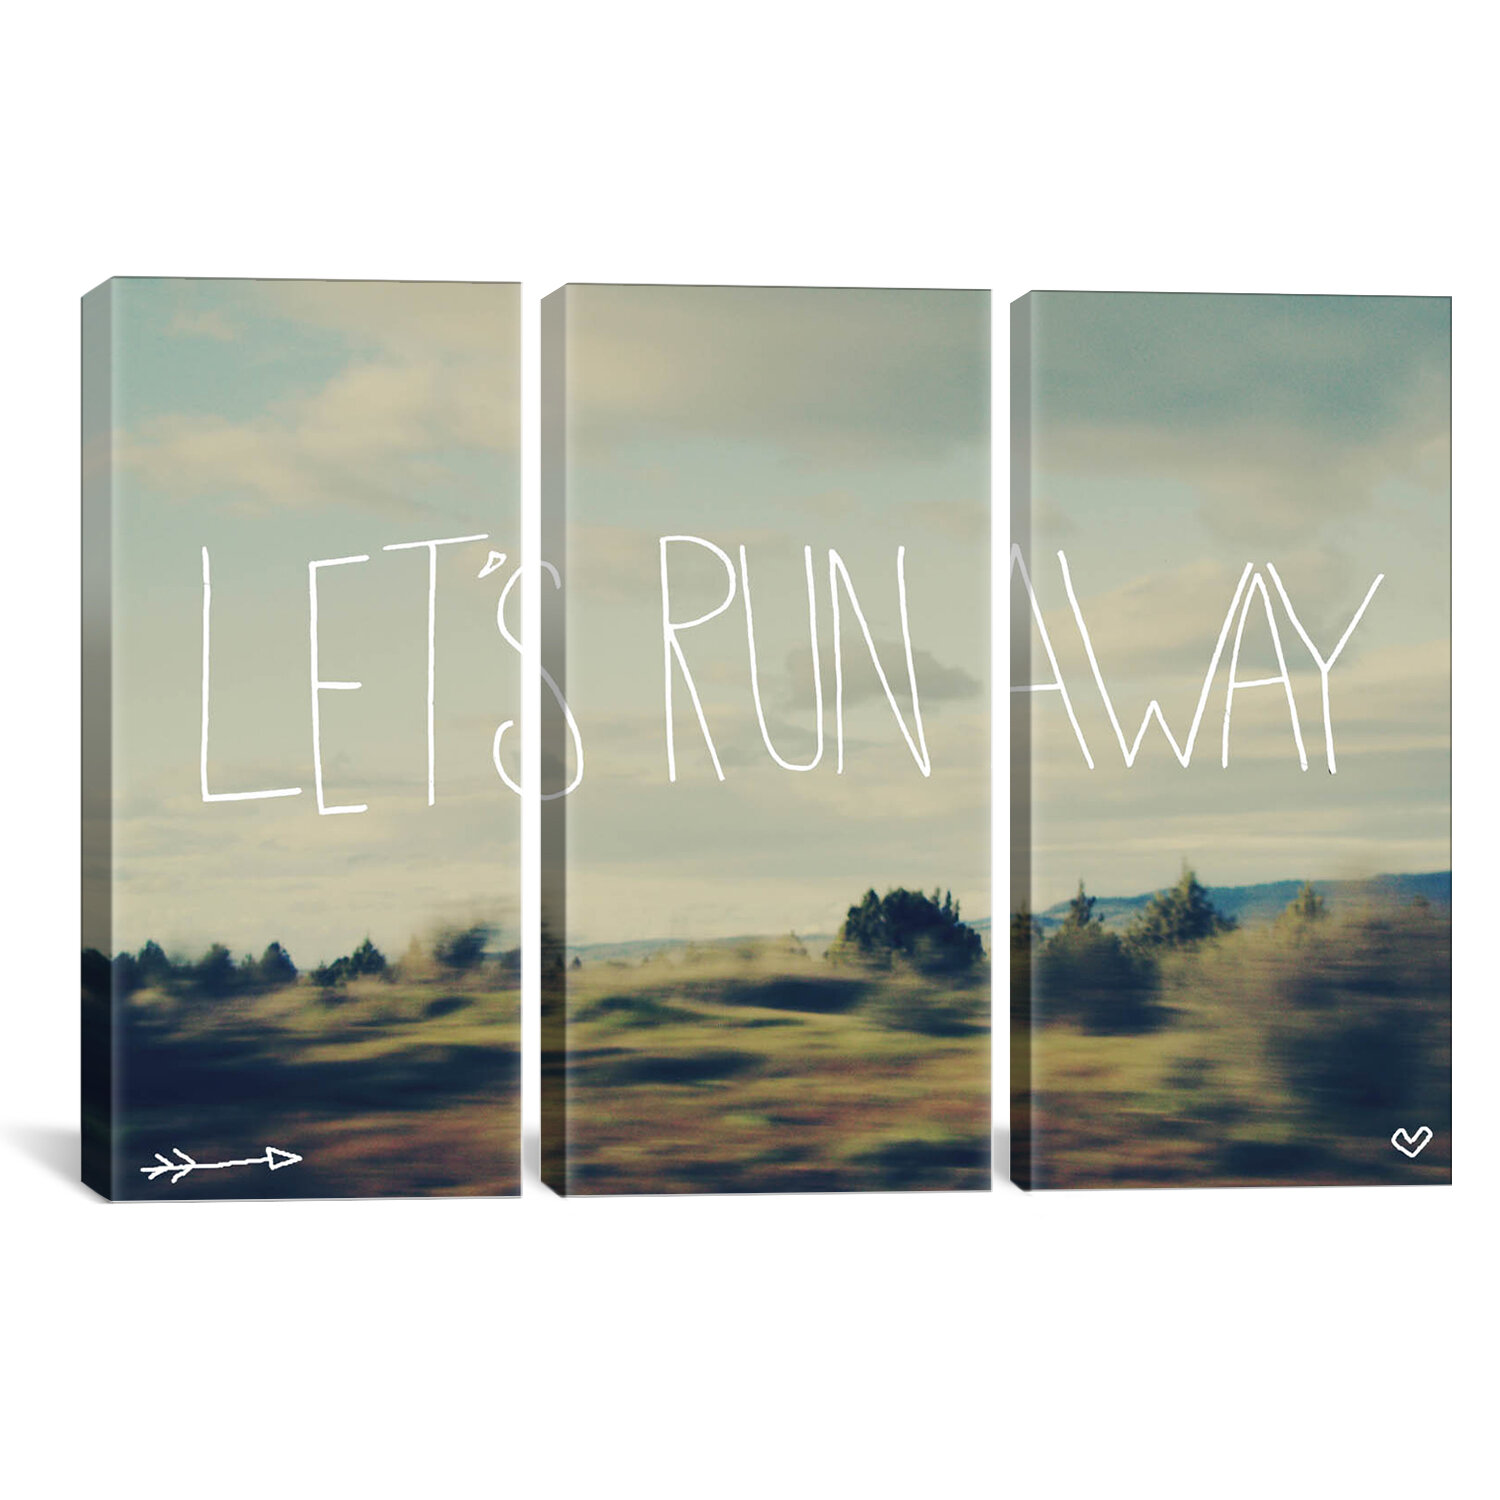 Icanvas Leah Flores Let S Run Away 3 Piece Wrapped Canvas Graphic Art Print Set Wayfair